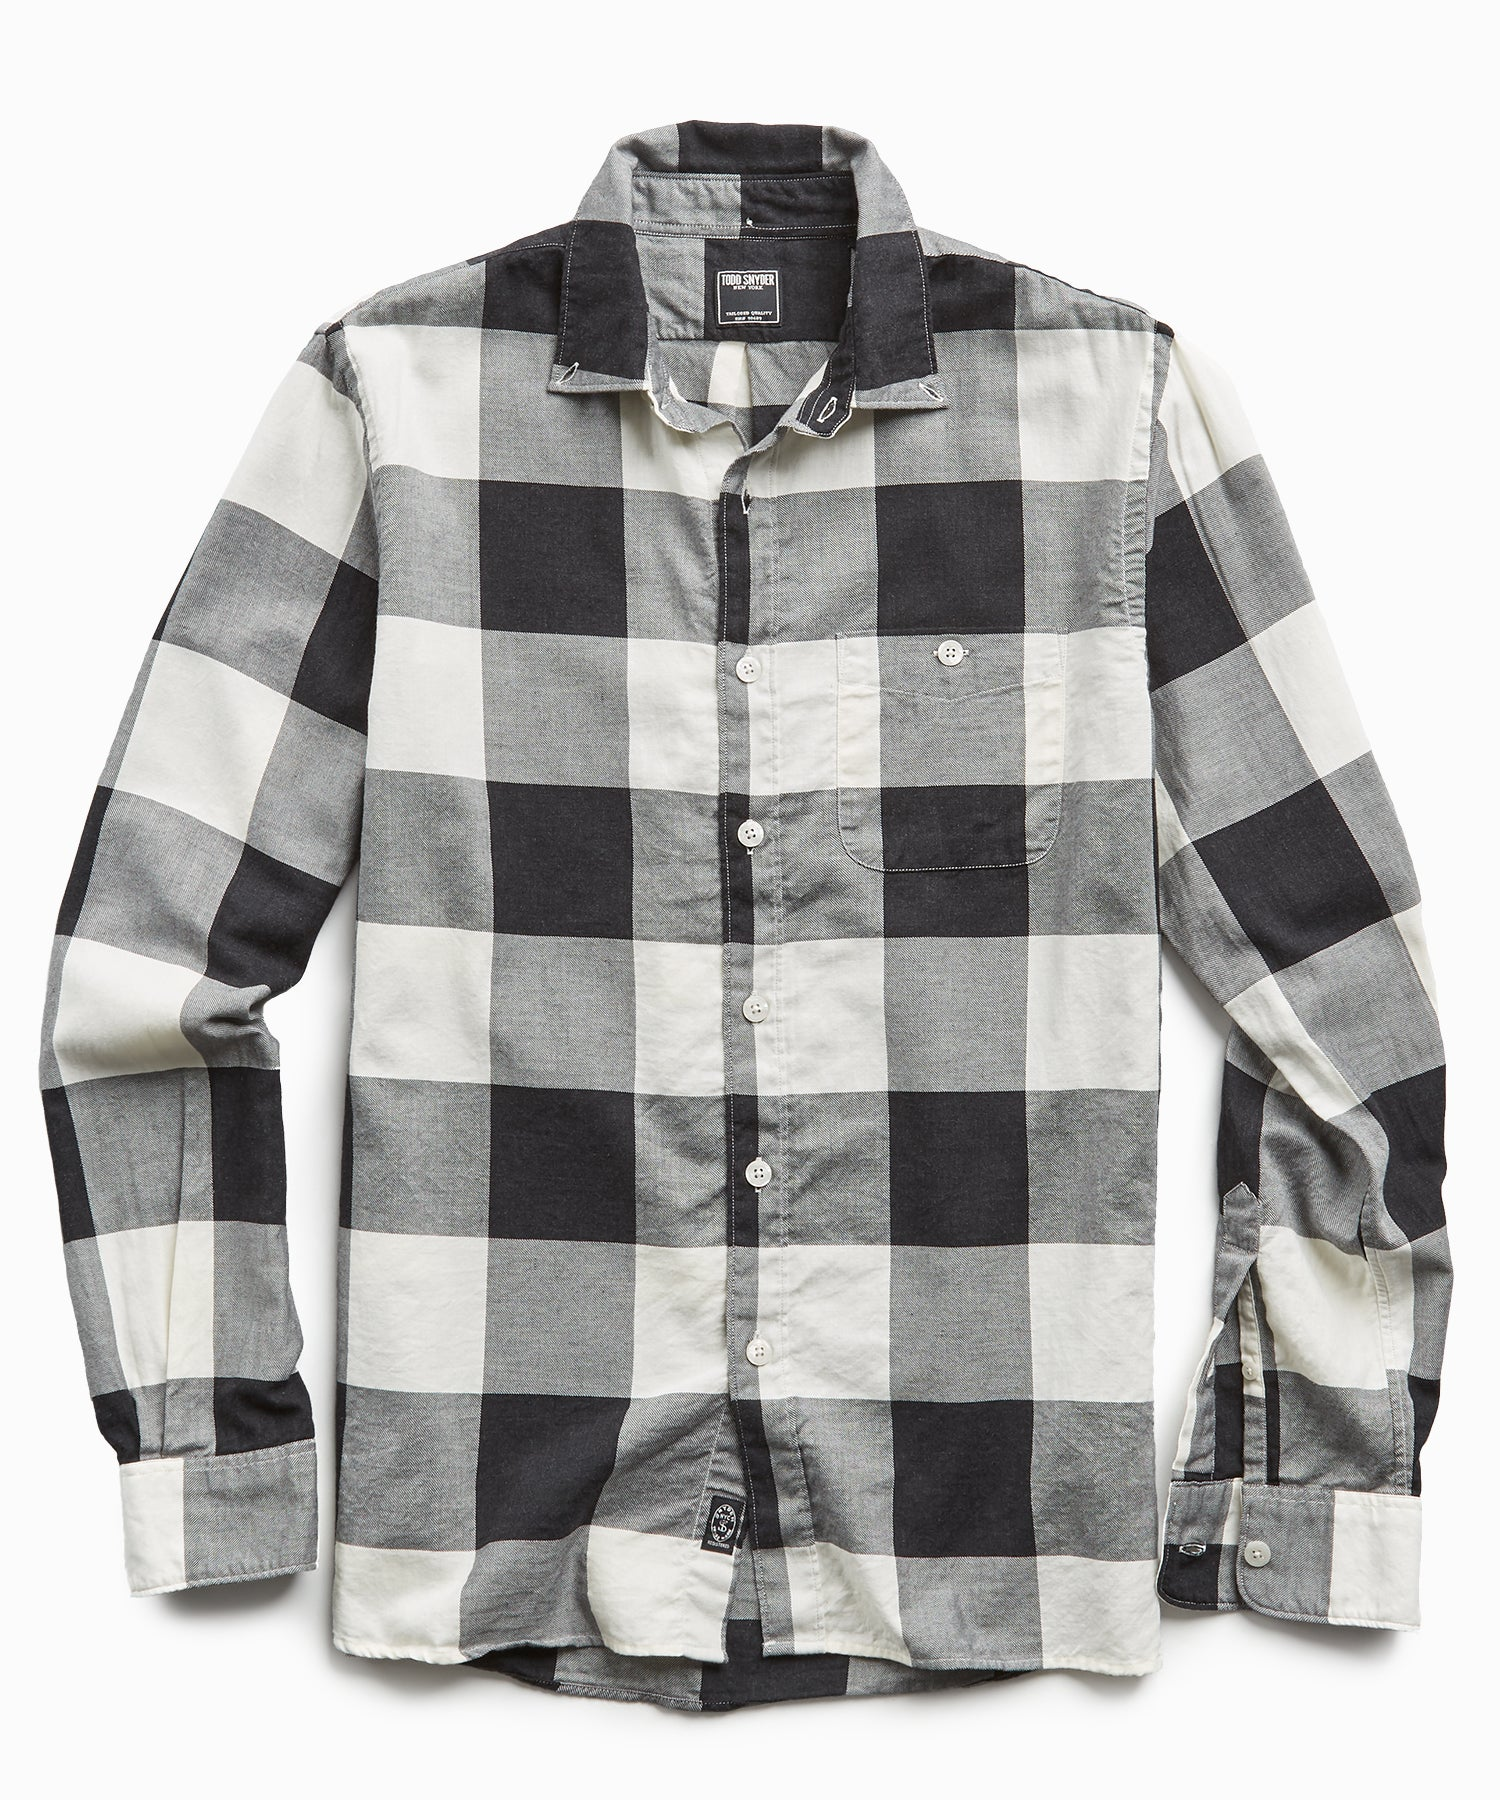 Portuguese Black and White Check Flannel Shirt